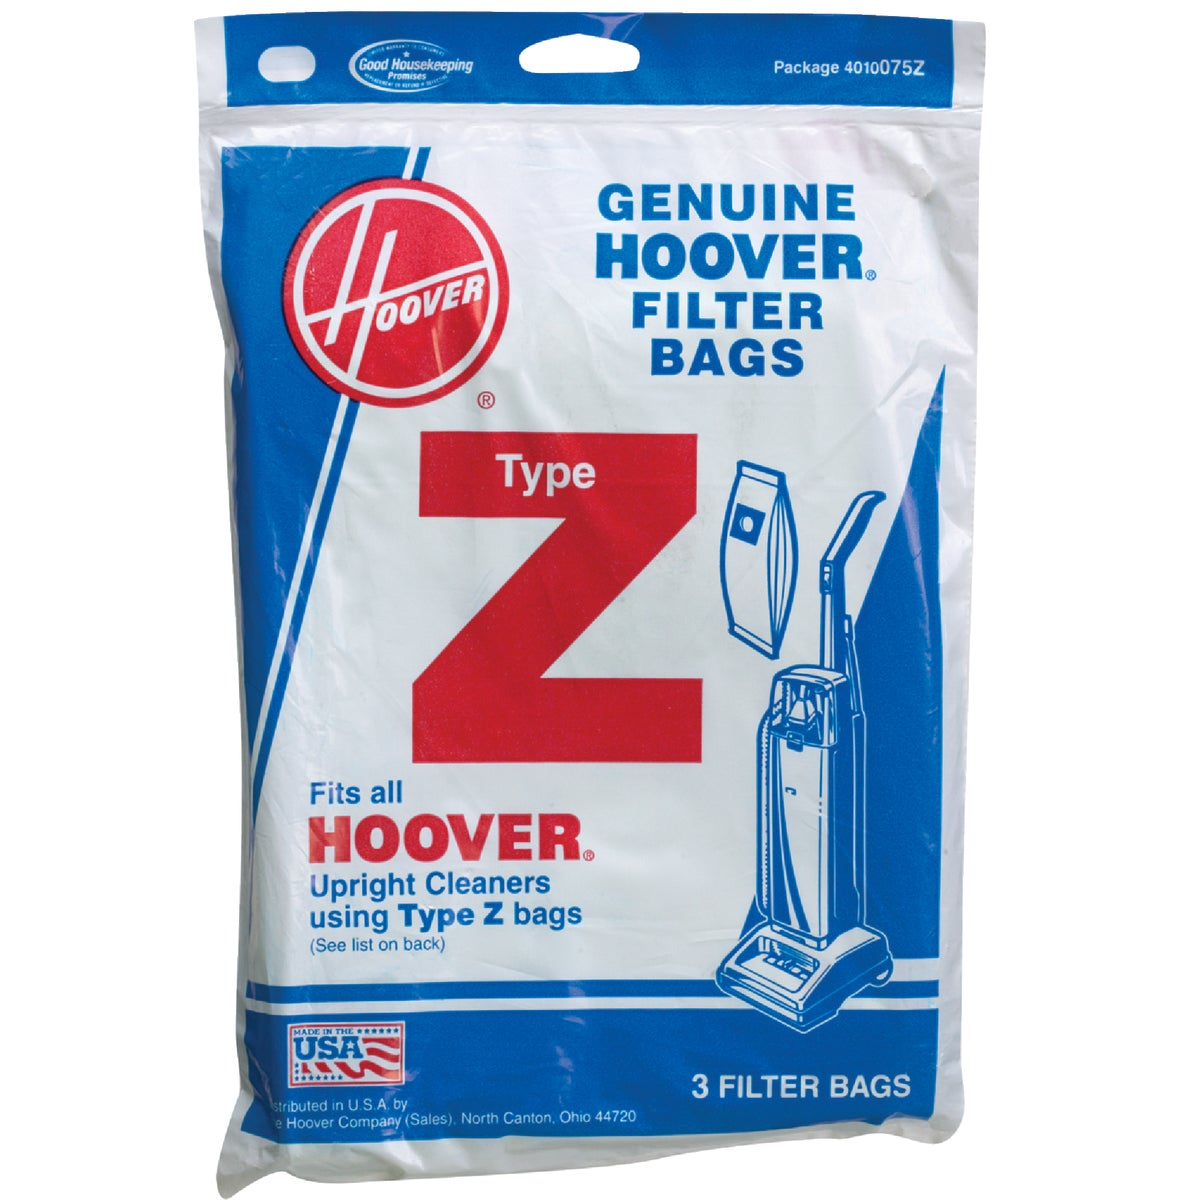 VACUUM CLEANER BAG - 4010075Z by Hoover Co